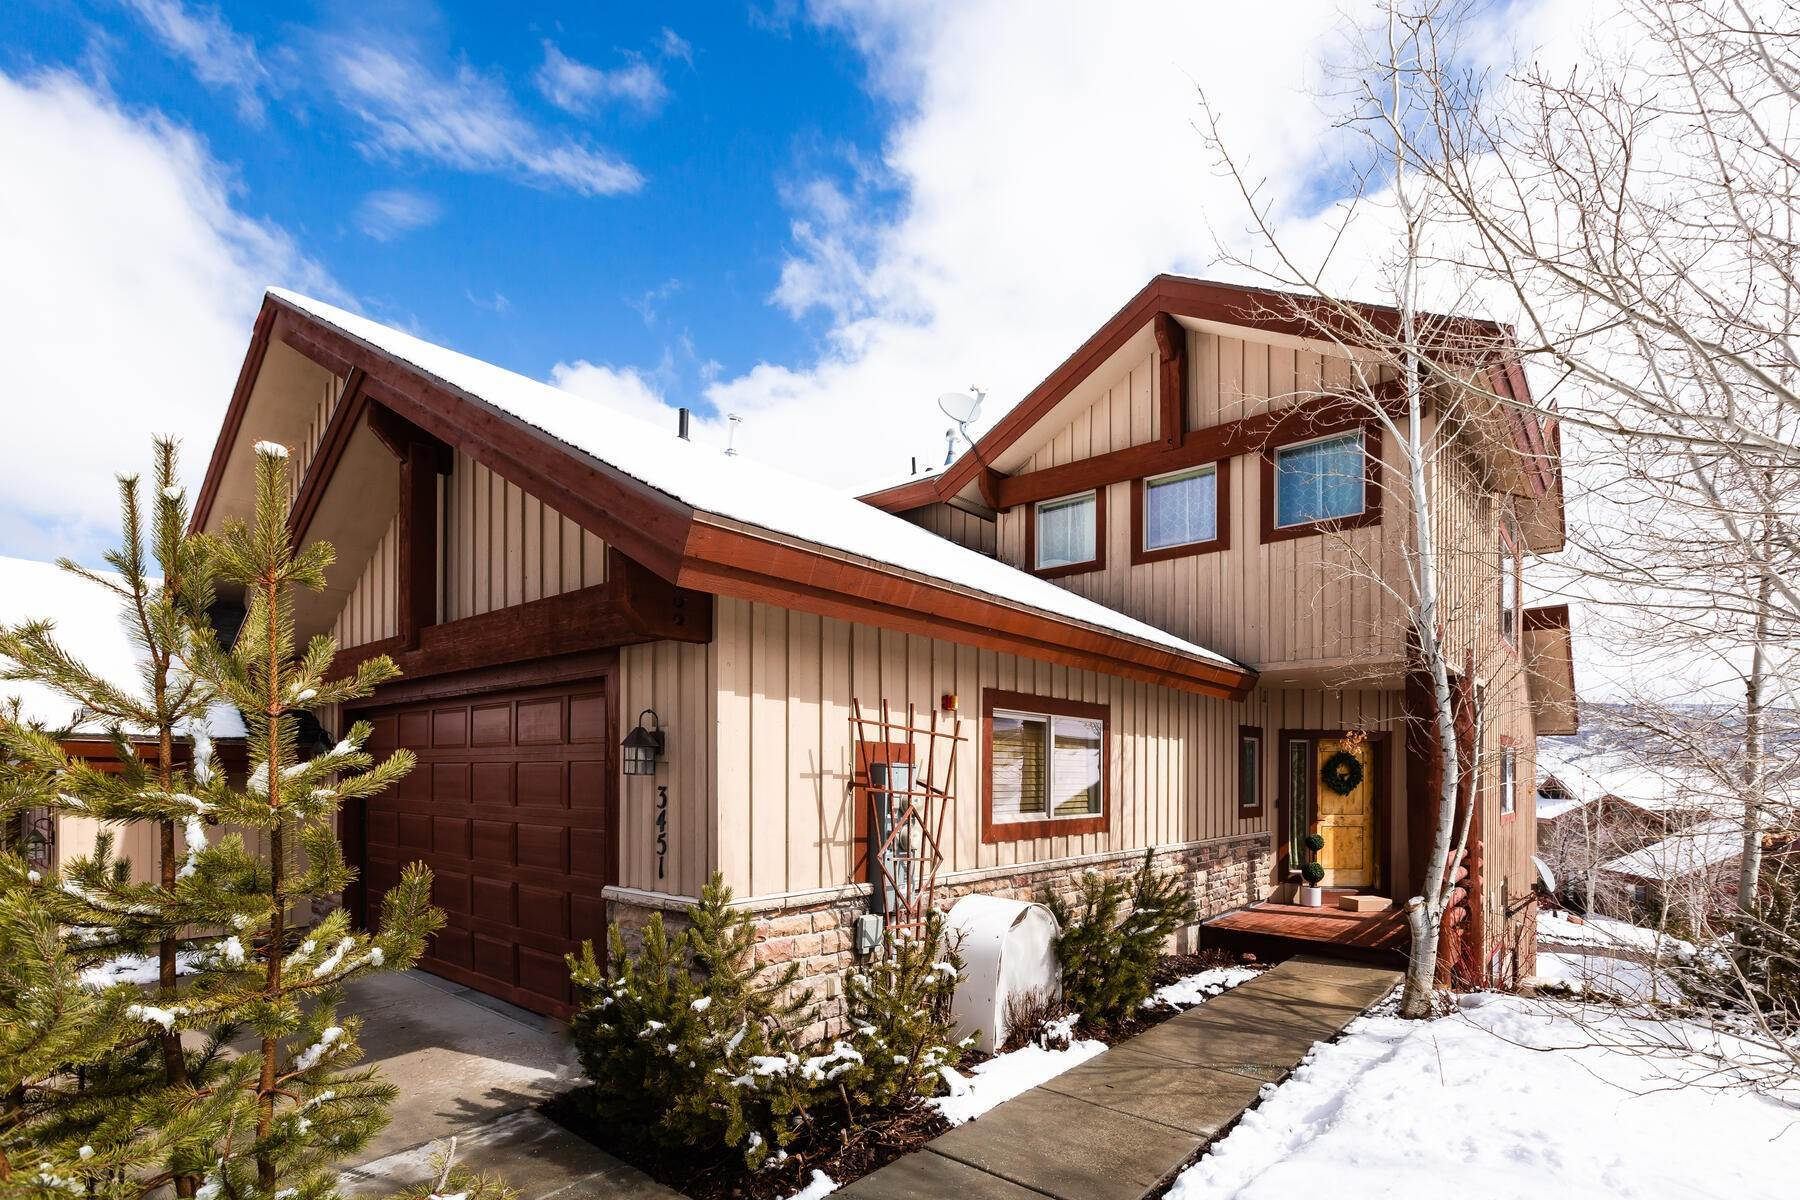 Property for Sale at Extensive Remodel Throughout 3451 W Cedar Dr Park City, Utah 84098 United States